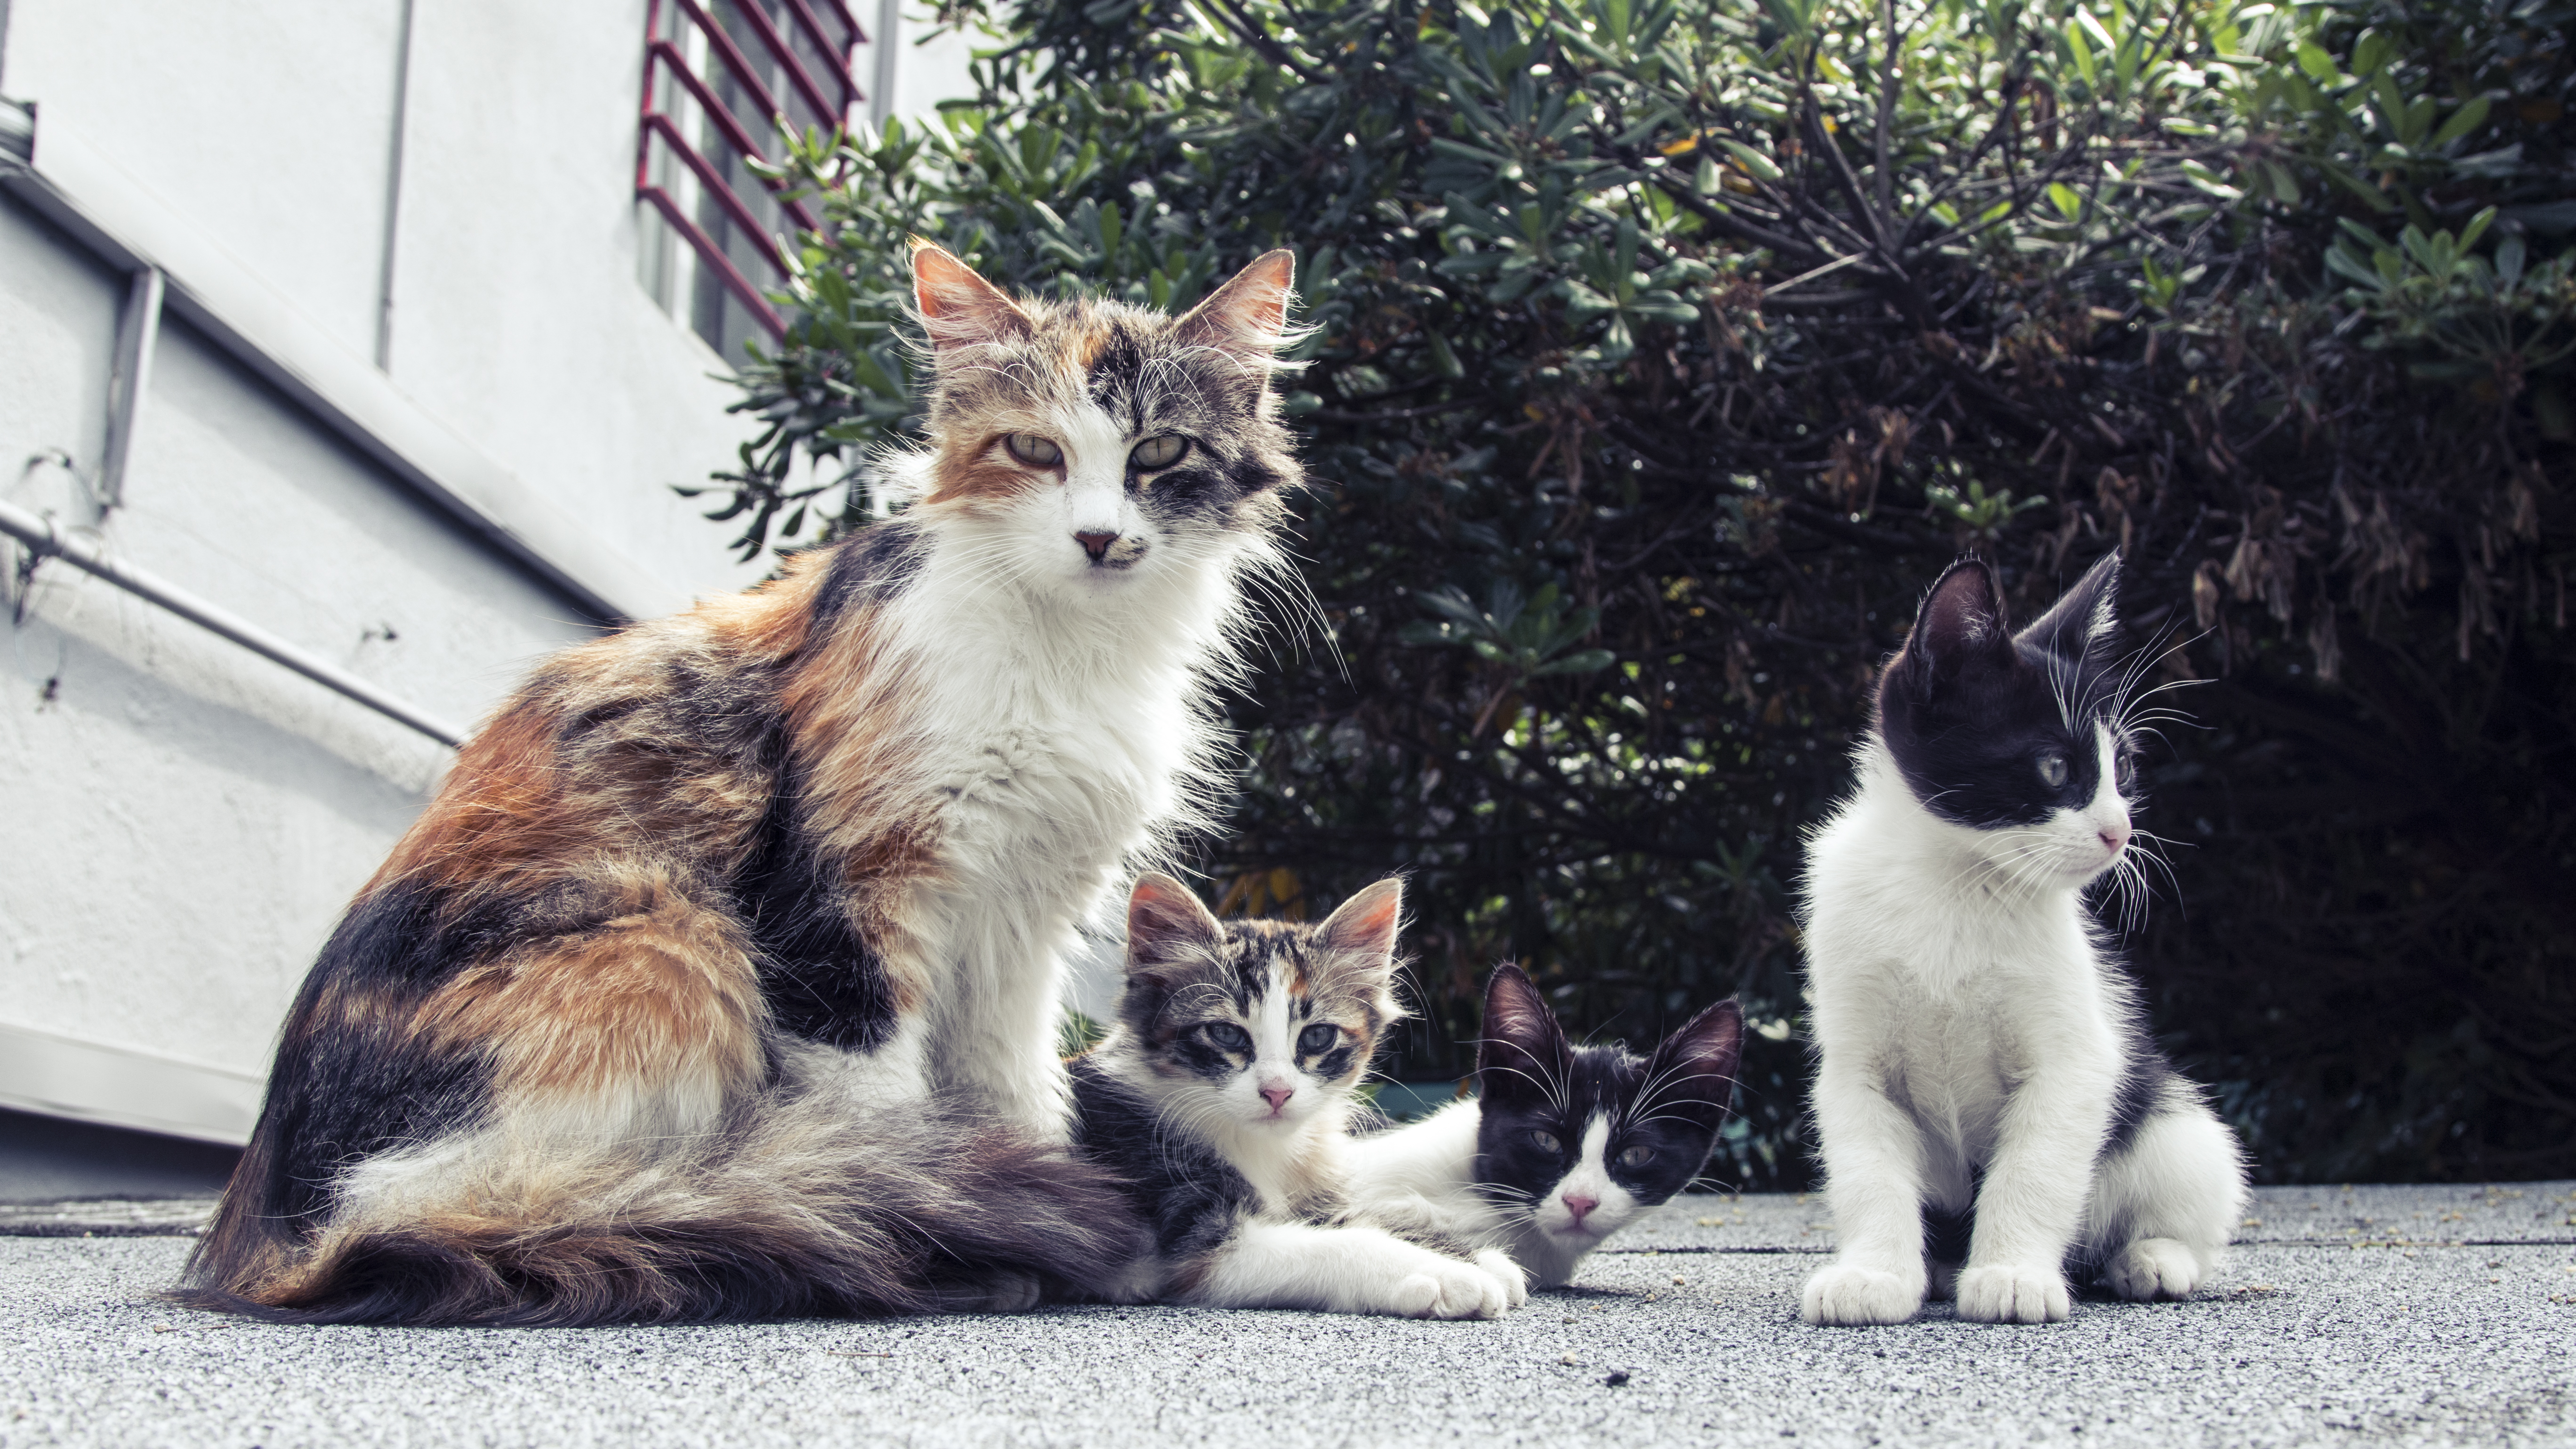 Cats in a group